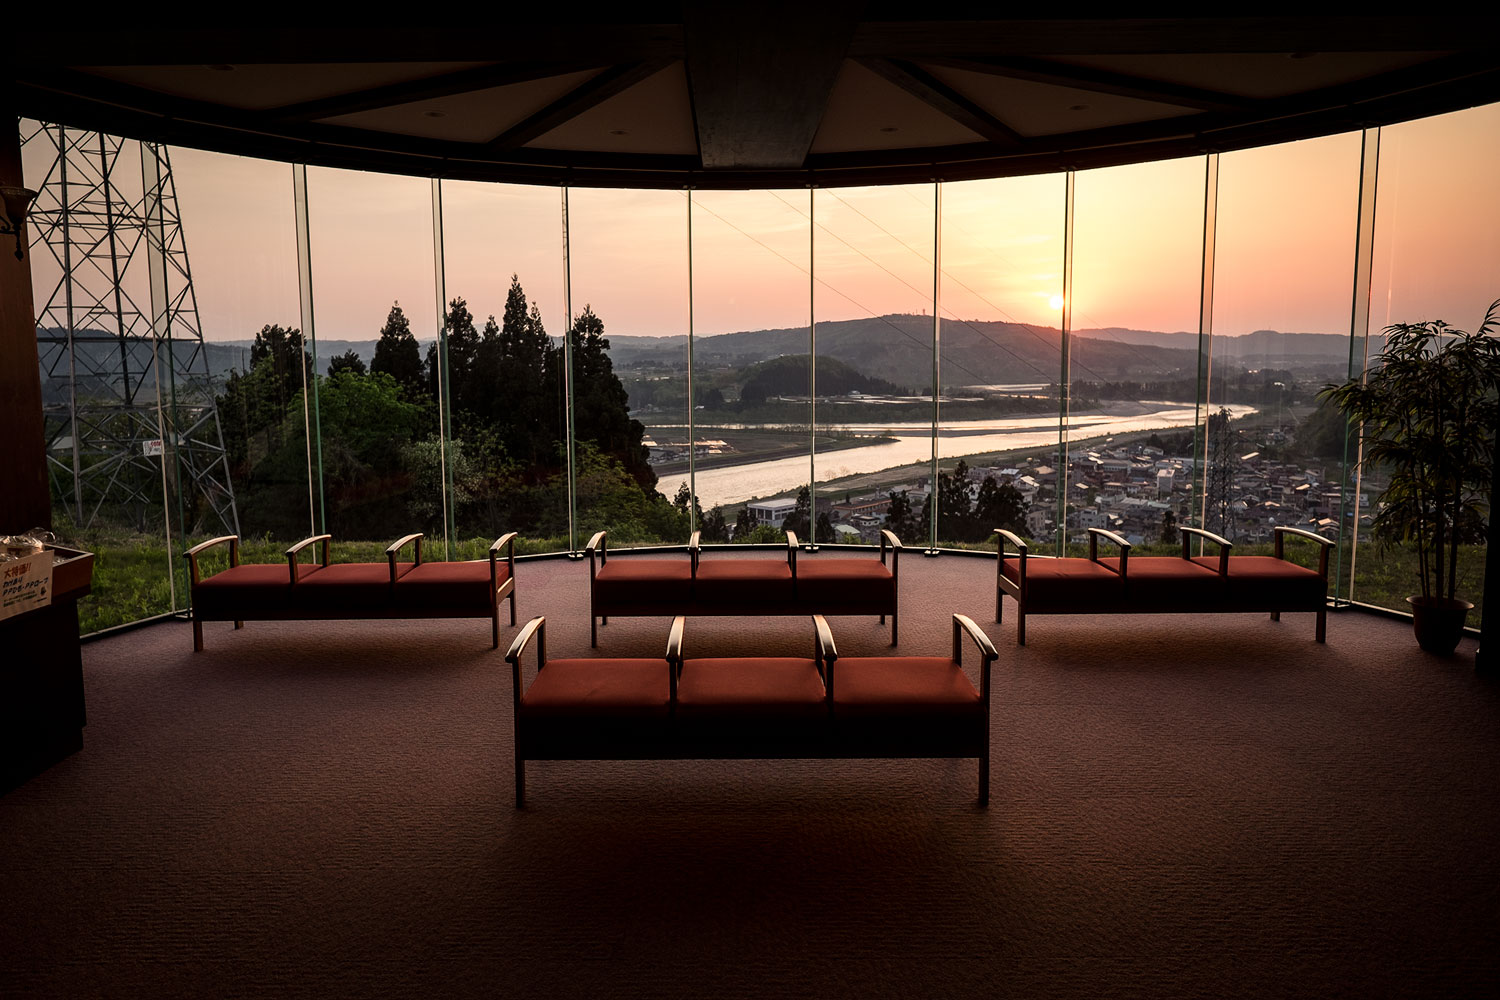 he view form the lobby of the hot springs. Pure sunset bliss!